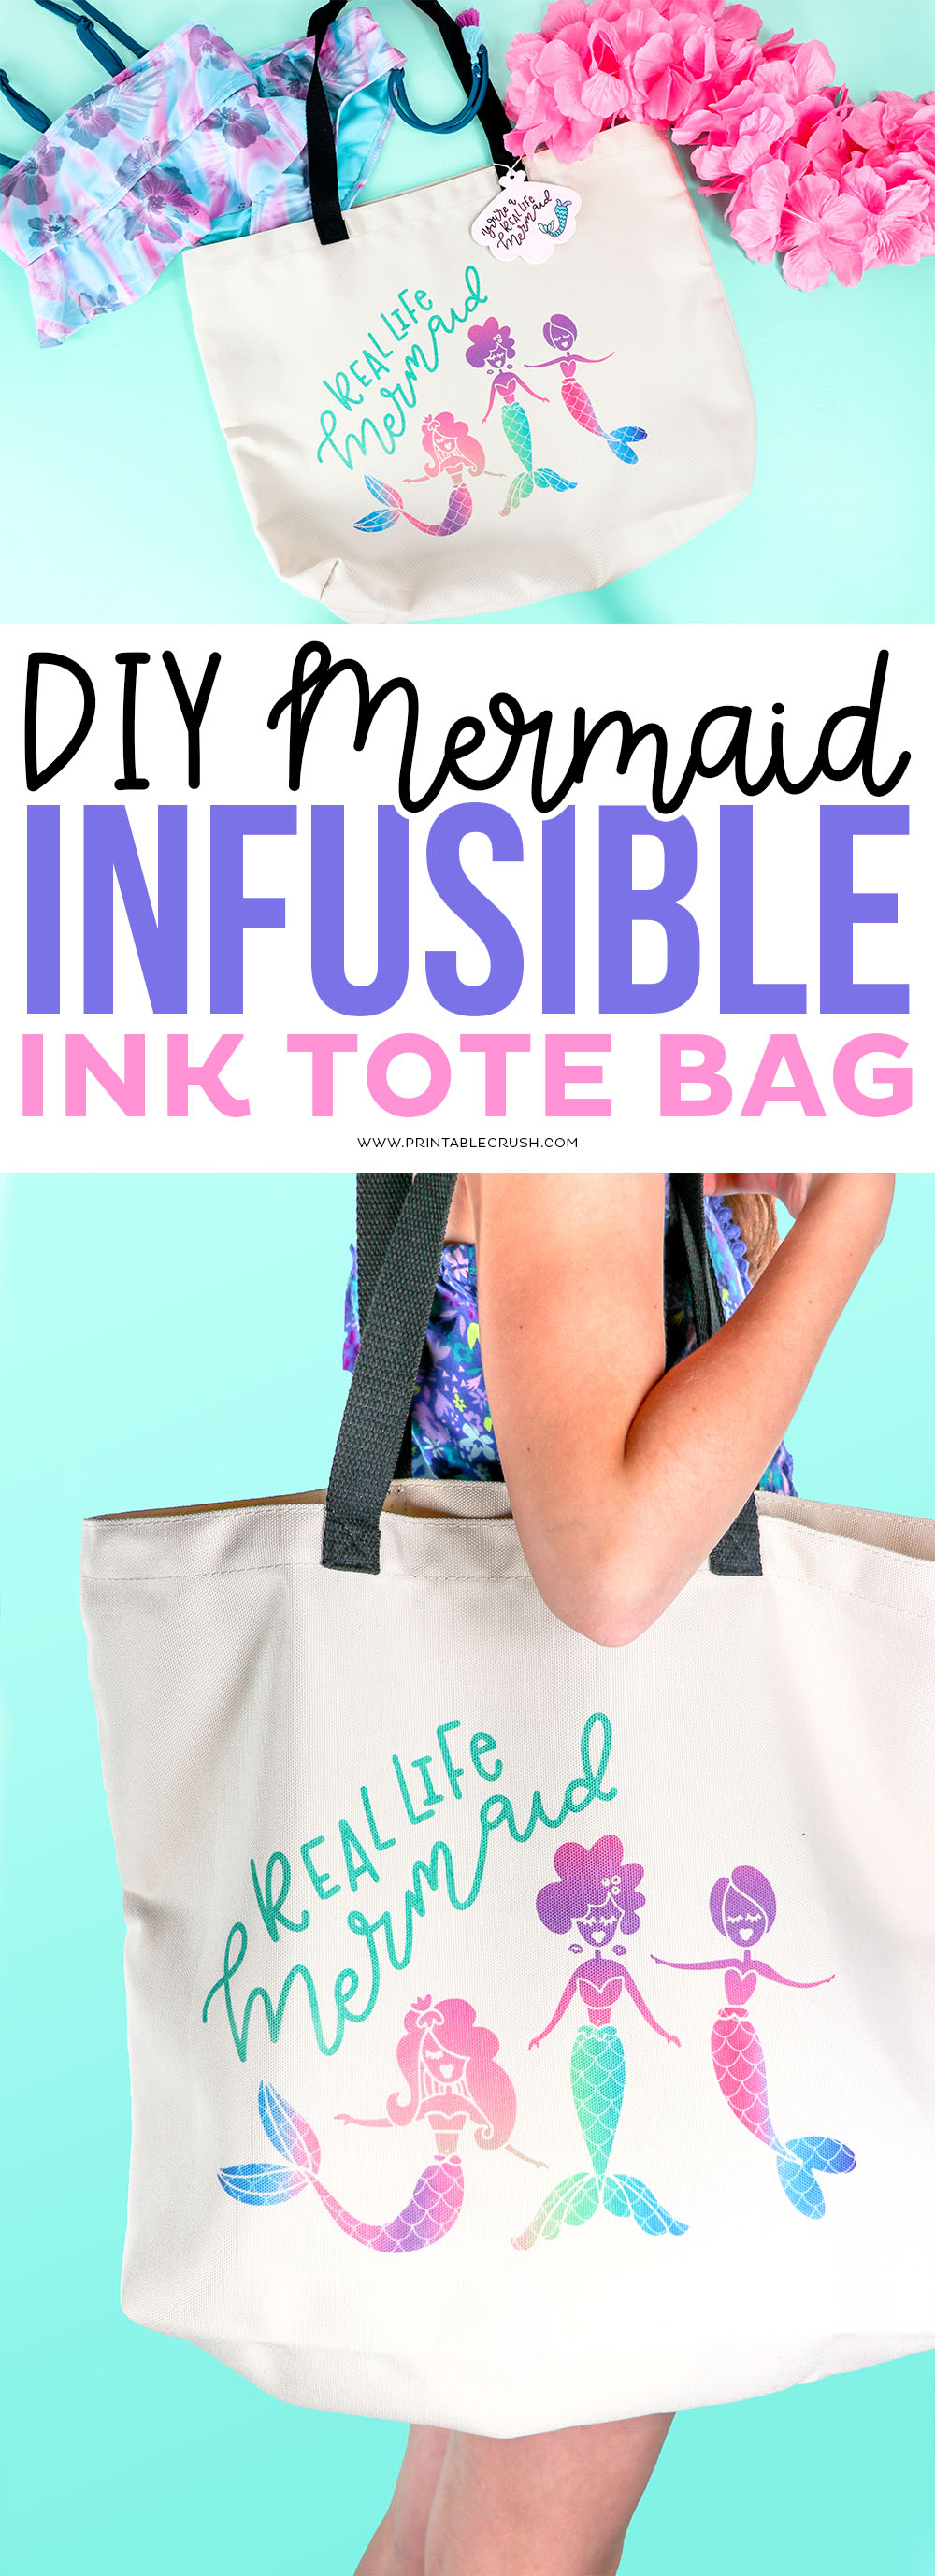 This DIY Mermaid Infusible Ink Tote is perfect to carry to the beach or pool!